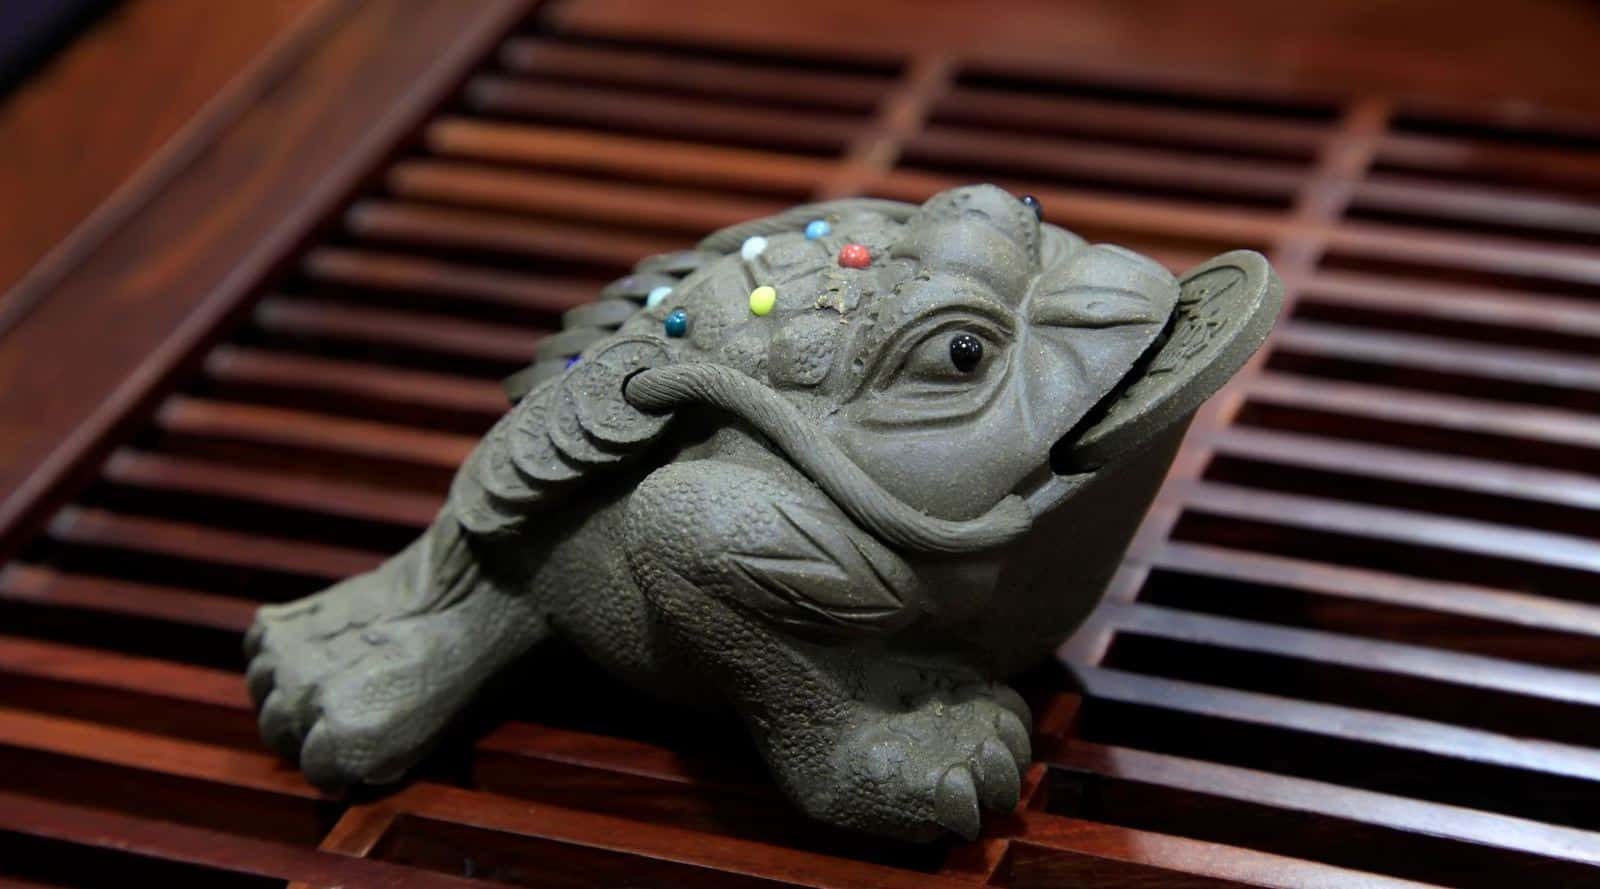 10 traditional tea pets and their meanings